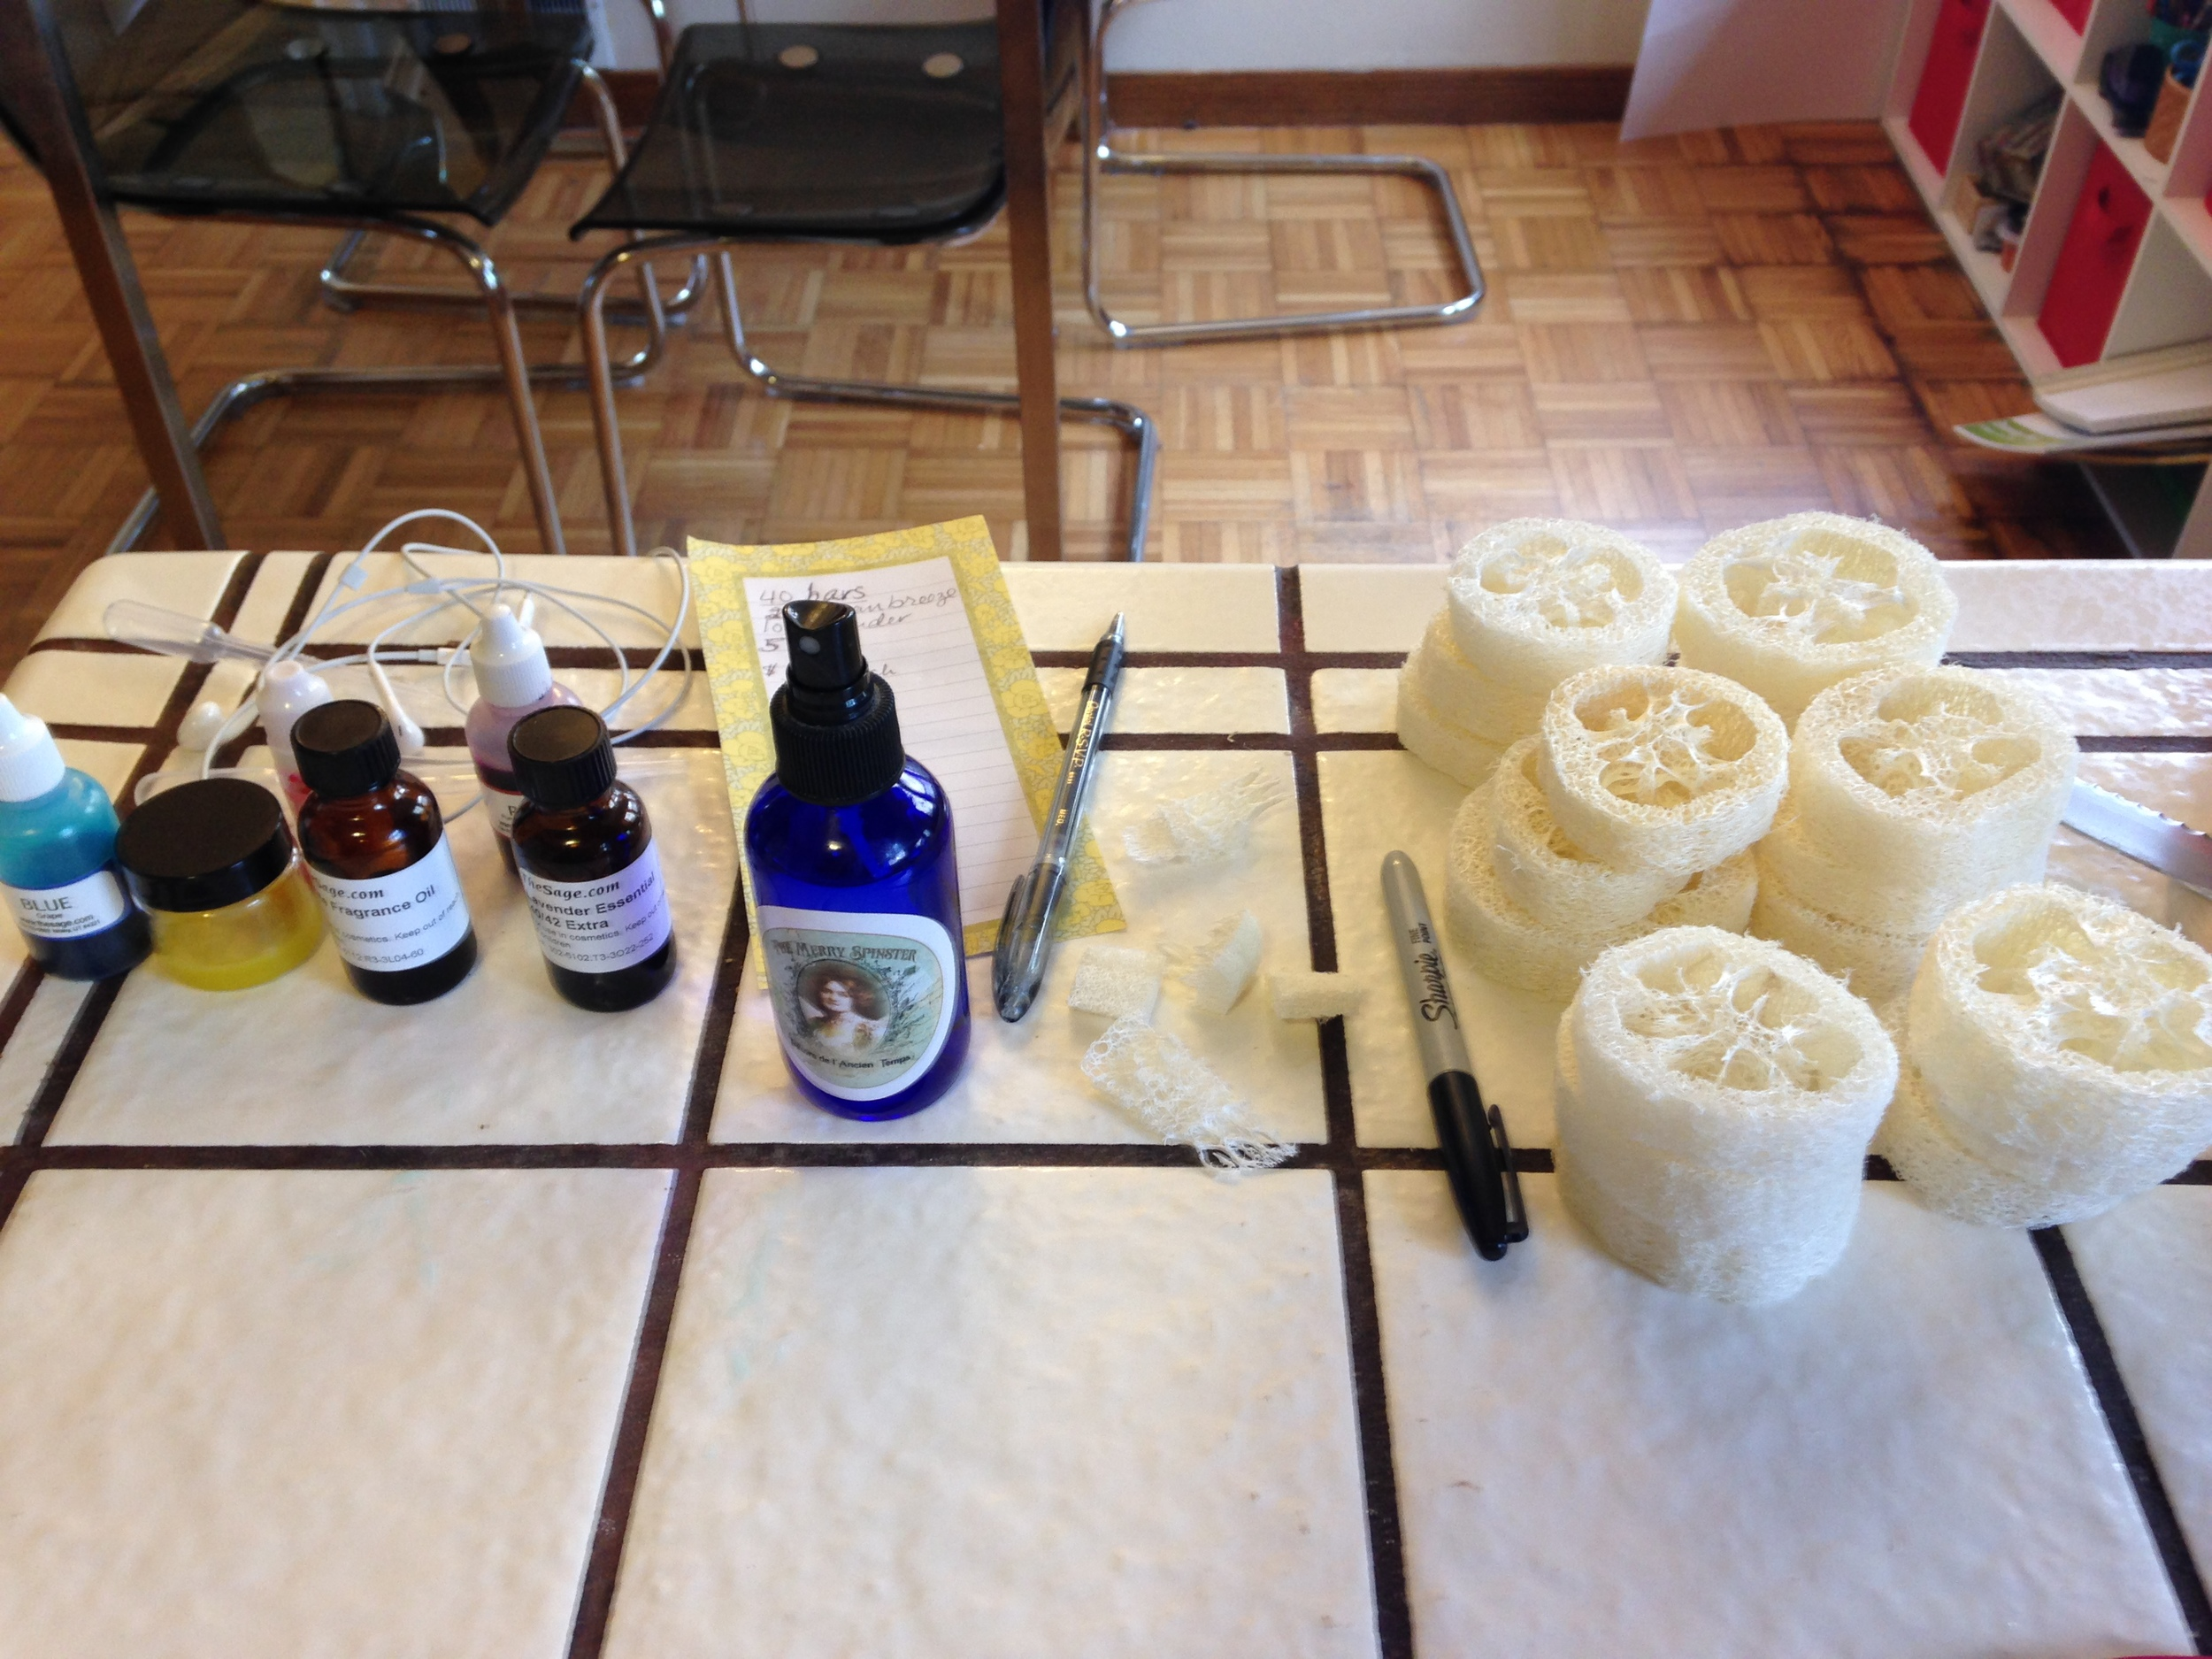 Tools of the trade. Loofah essential and fragrance oils, colorants, and the ever important alcohol spritzer.